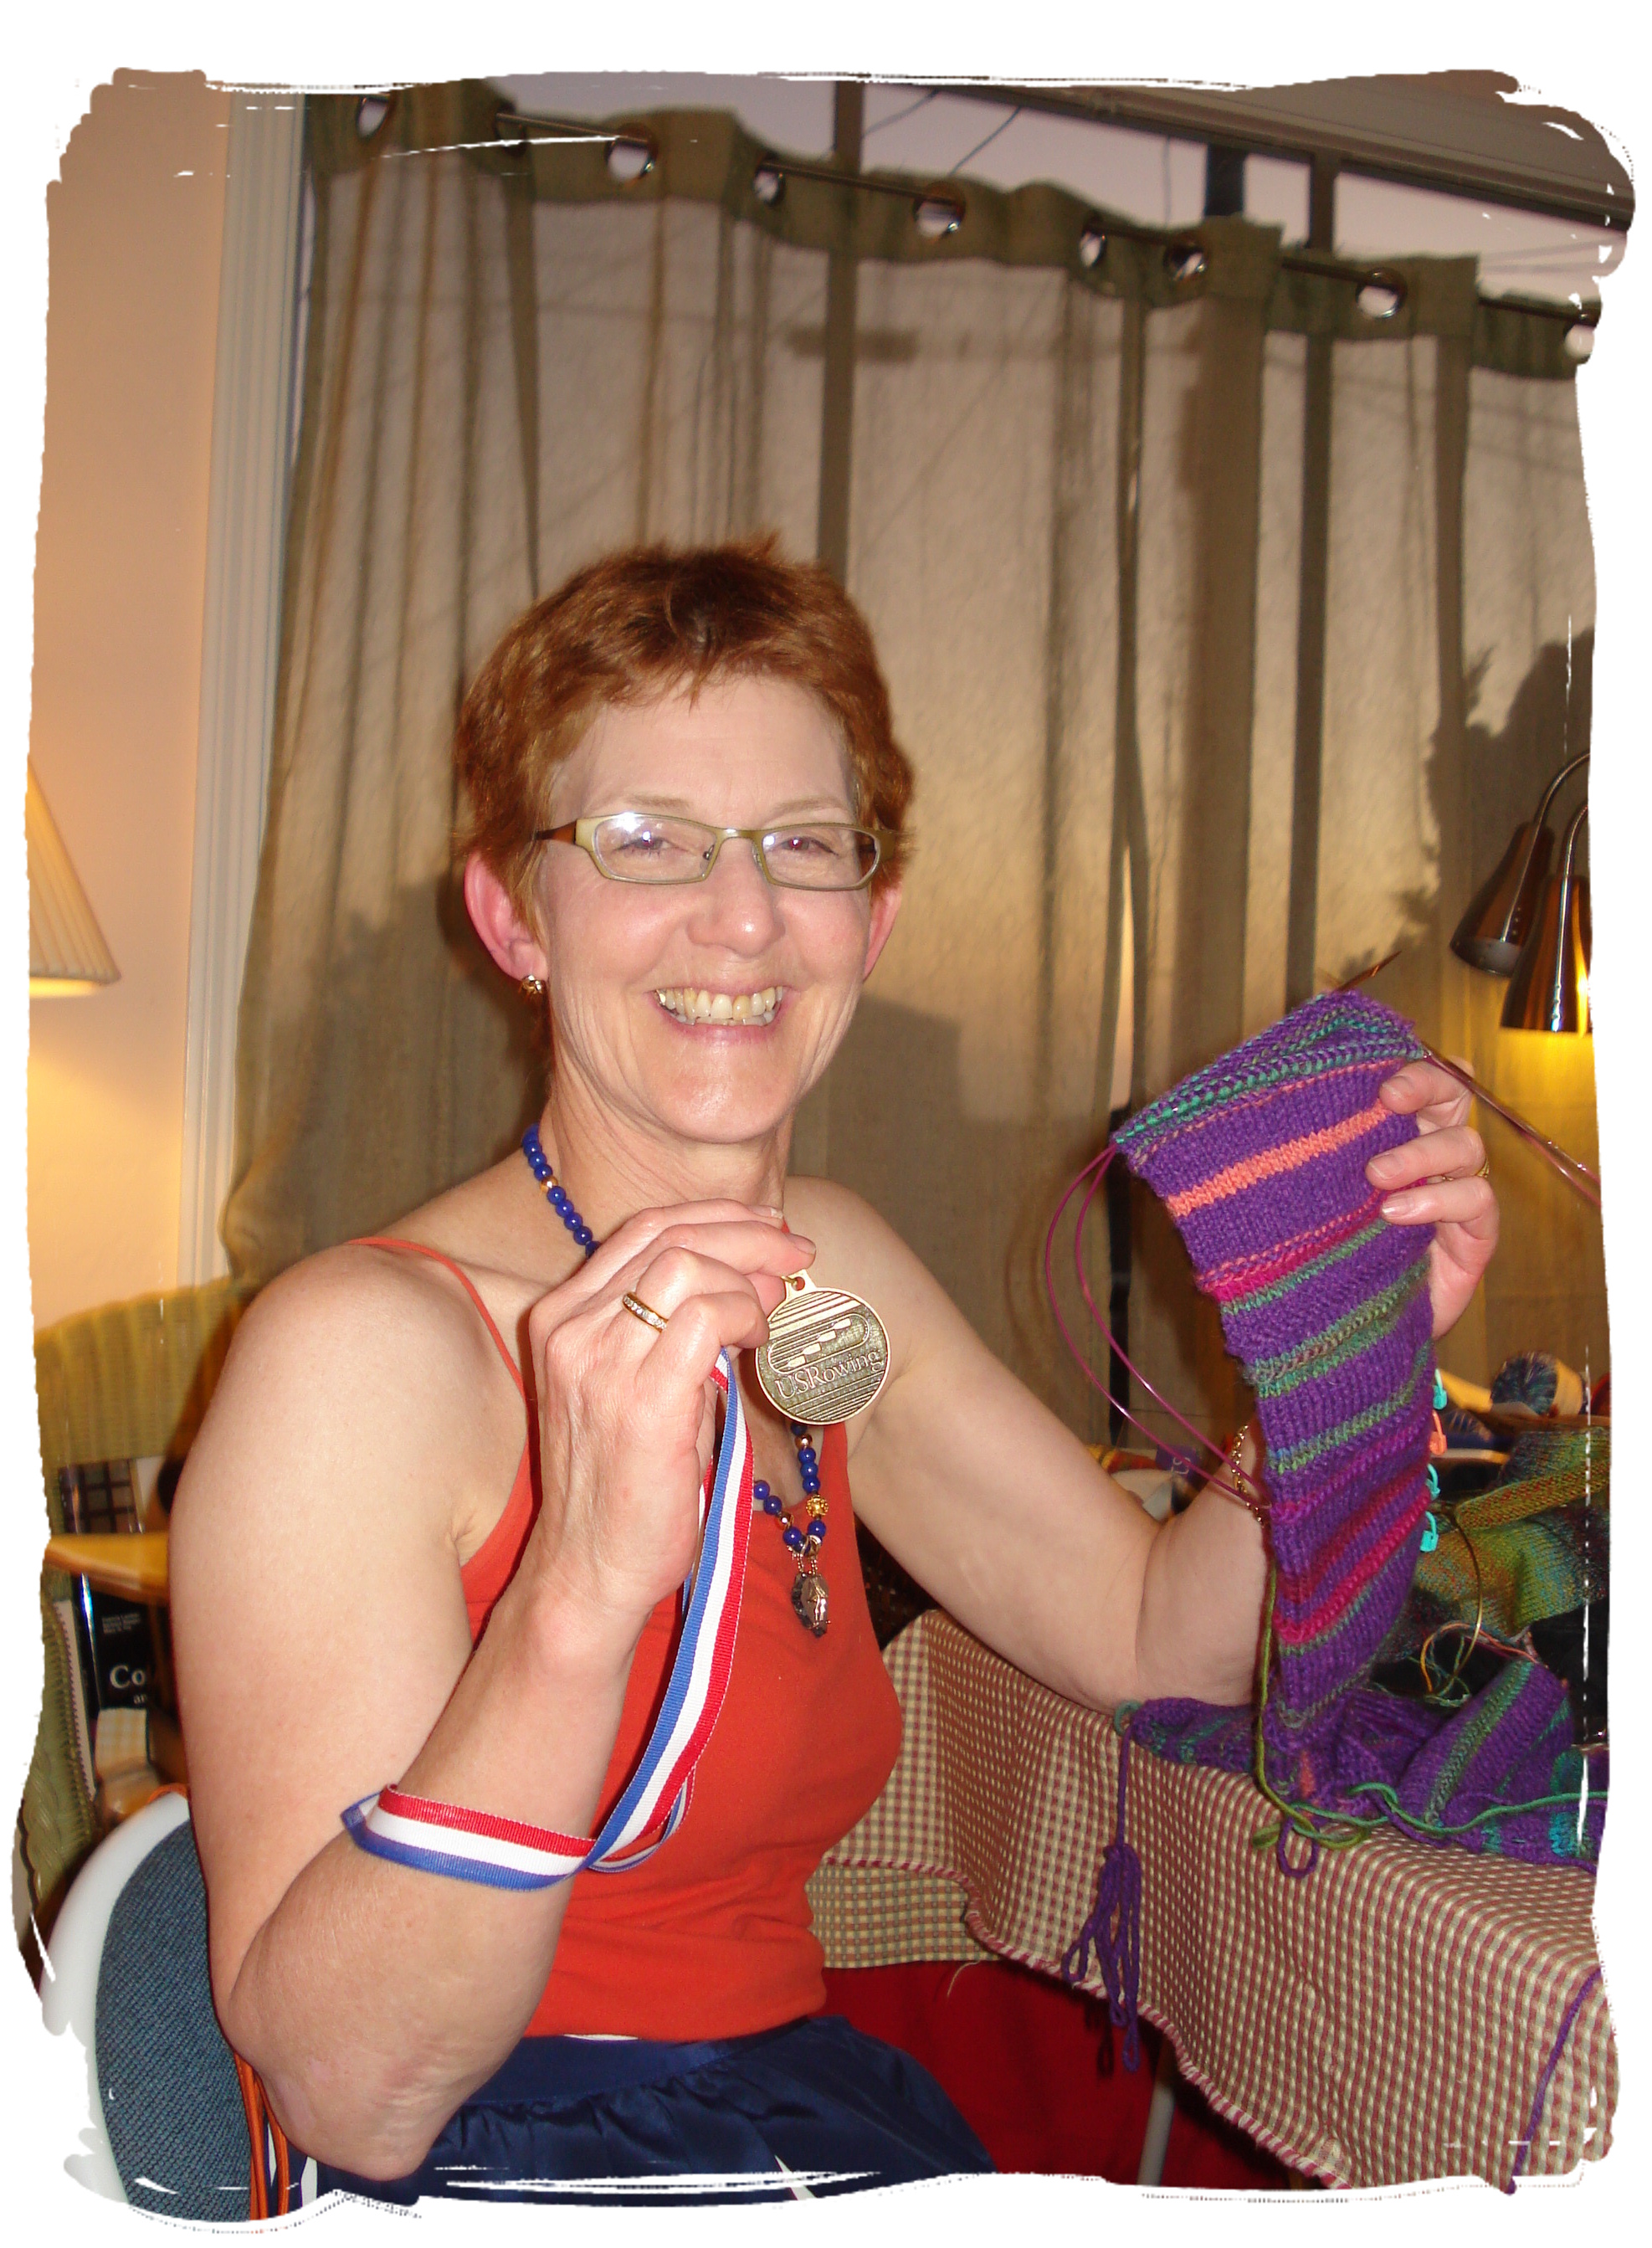 Peg with her medal and knitting